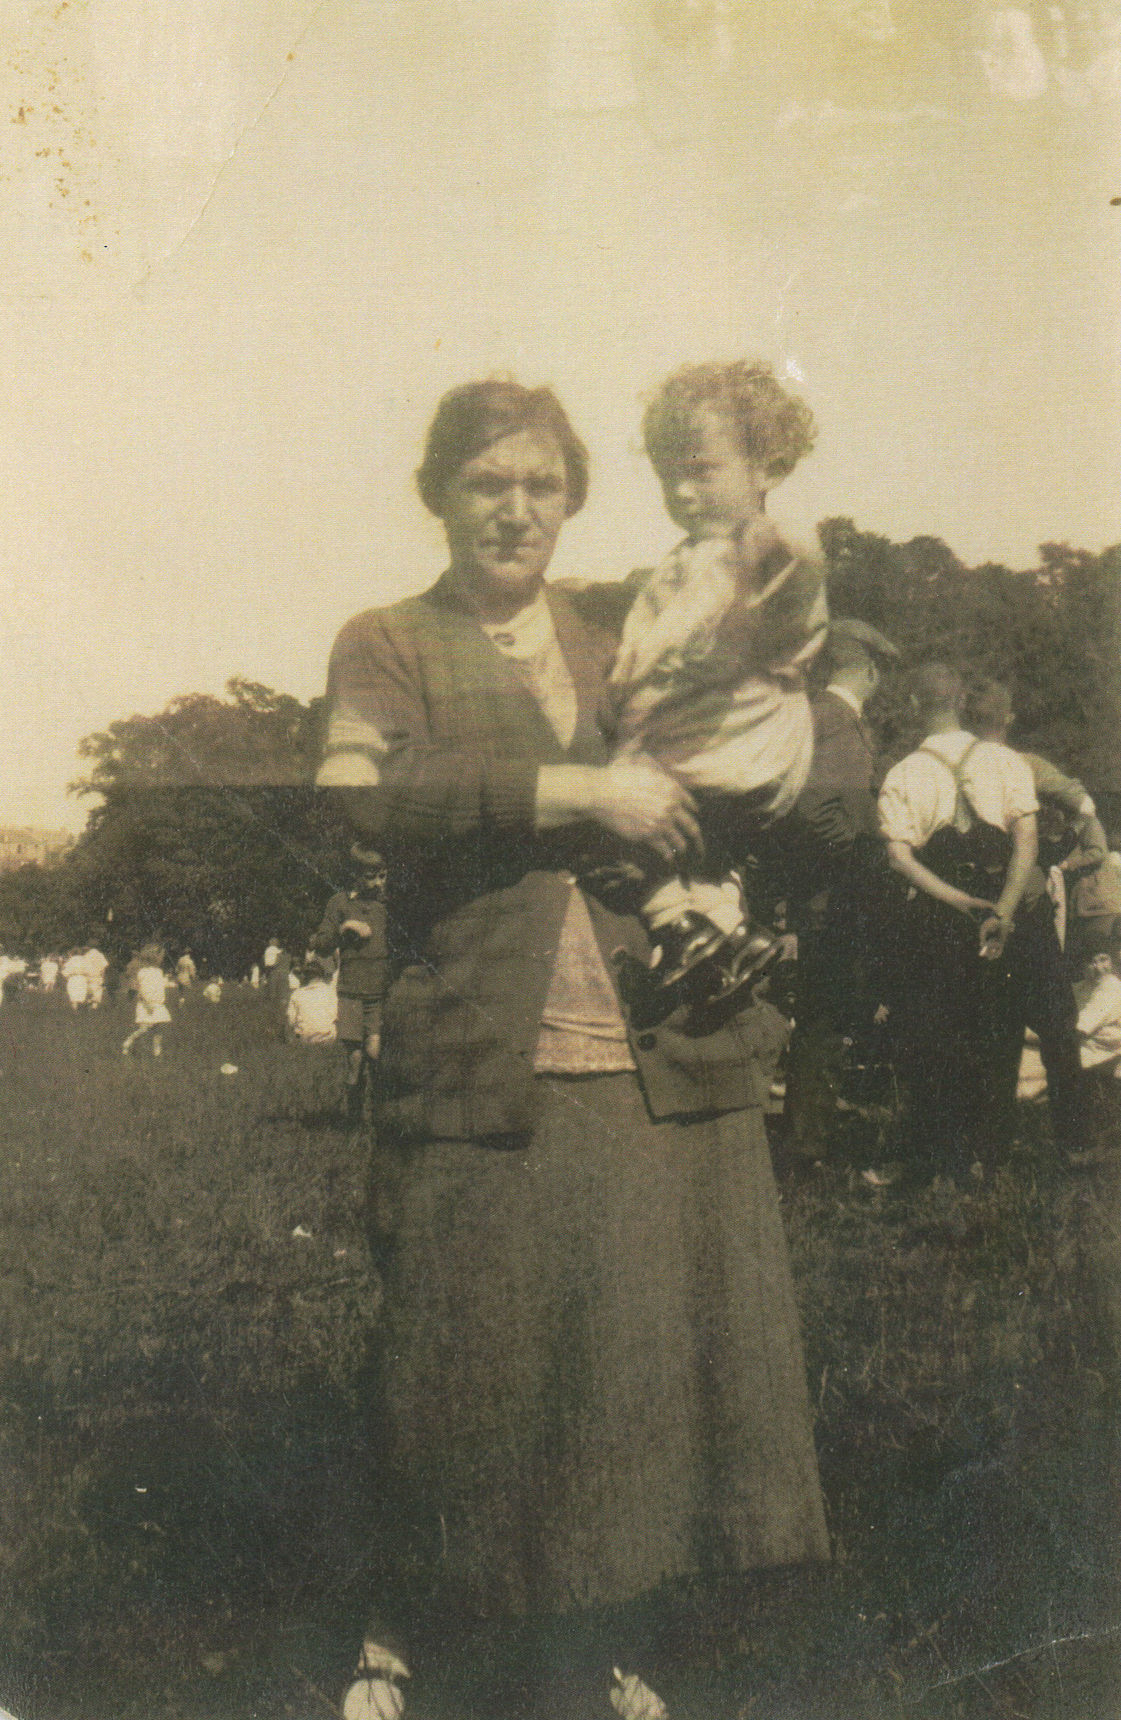 My Granny Boswell holding my Brother George at a Sunday School Picnic.